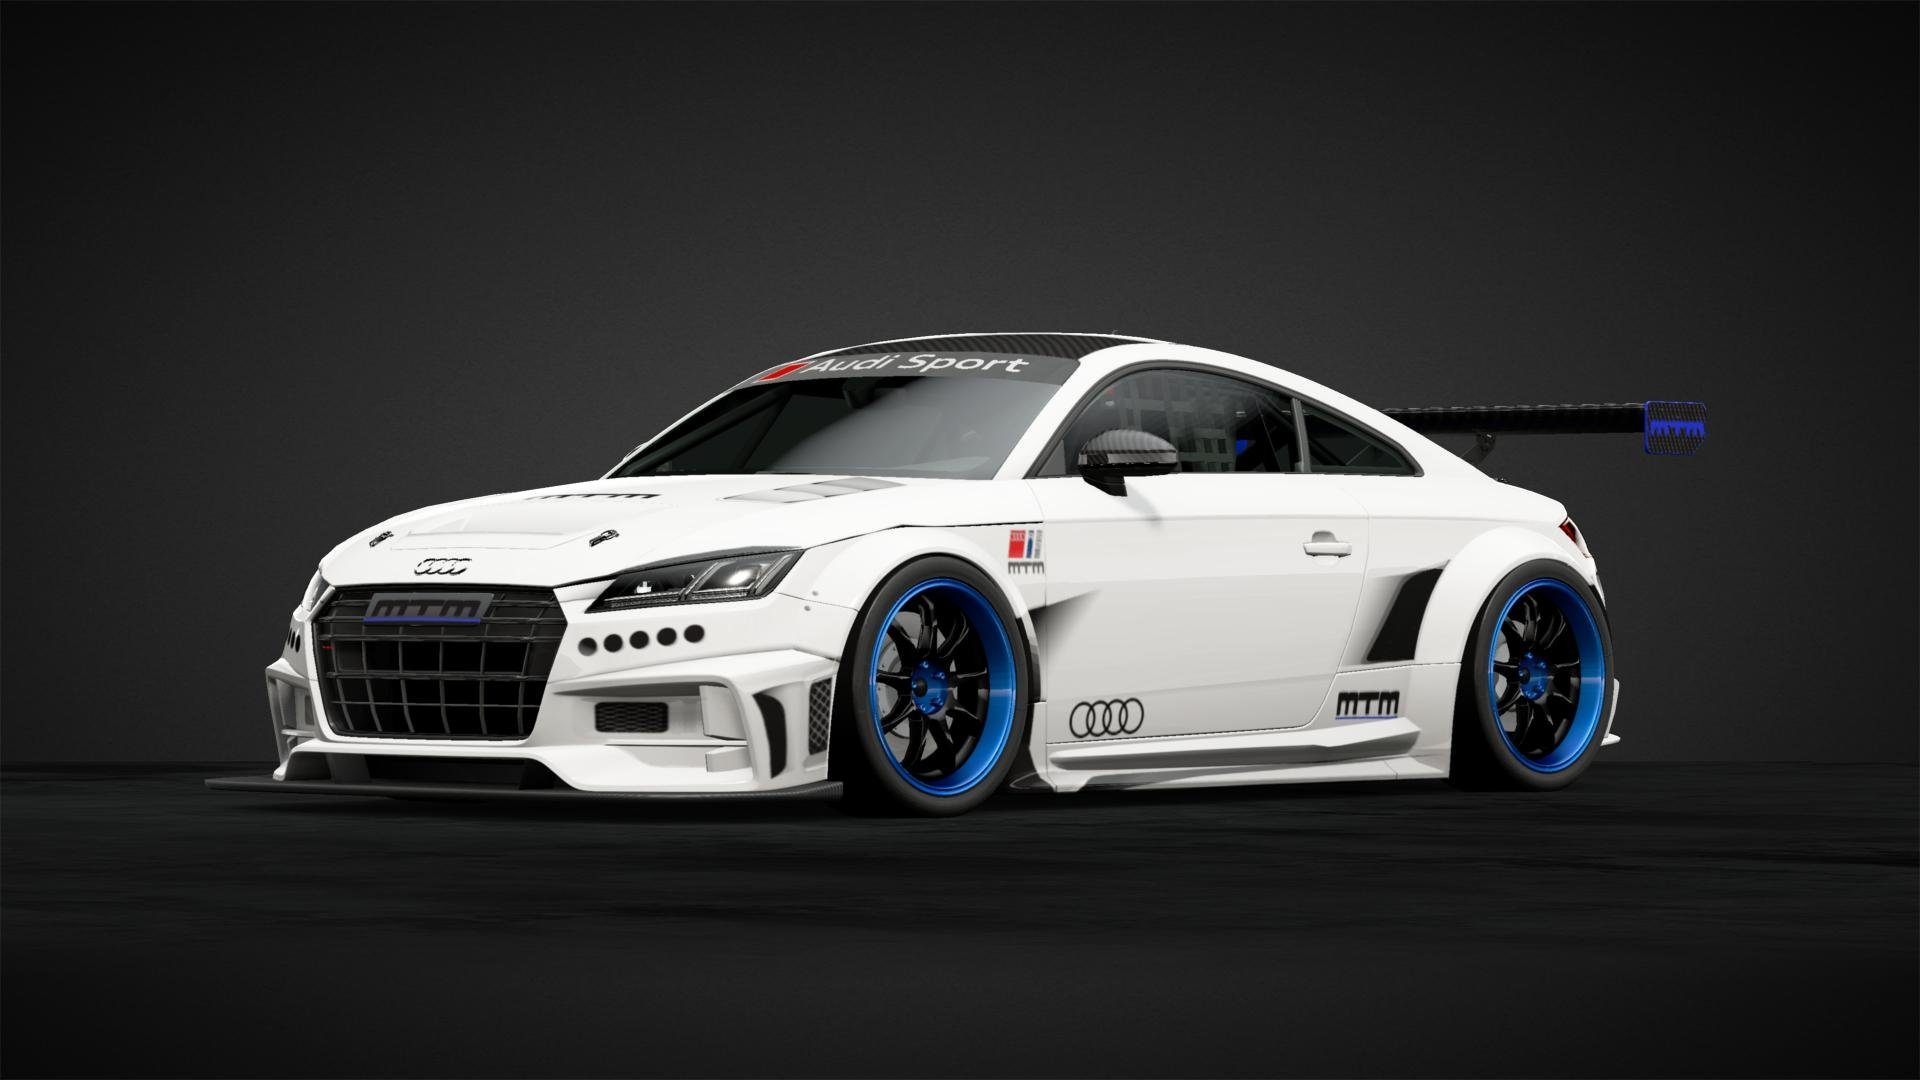 MTM TT RS wide body   Car Livery by xCOLOMB1ANx Community Gran 1920x1080